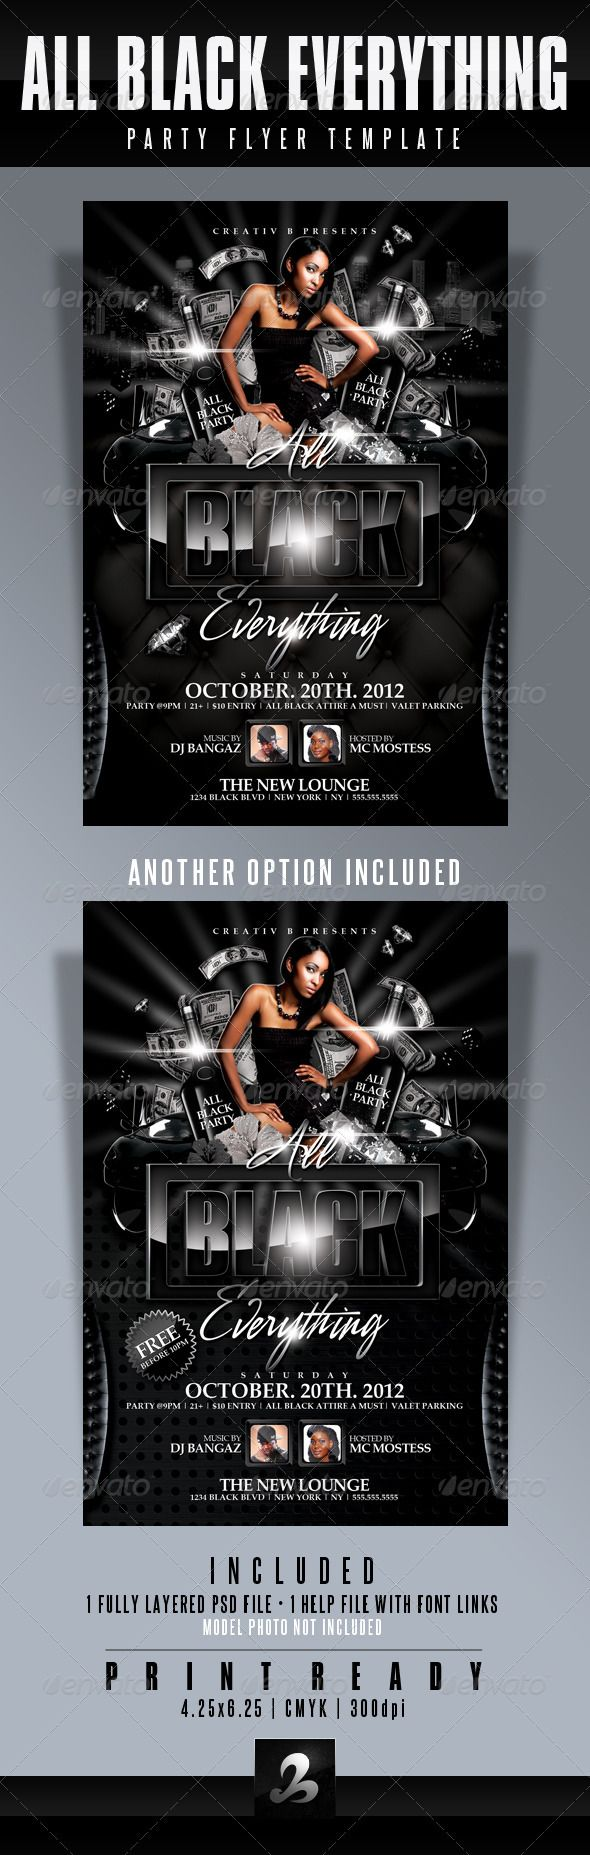 All Black Everything Party Flyer Template – Black Flyer Template